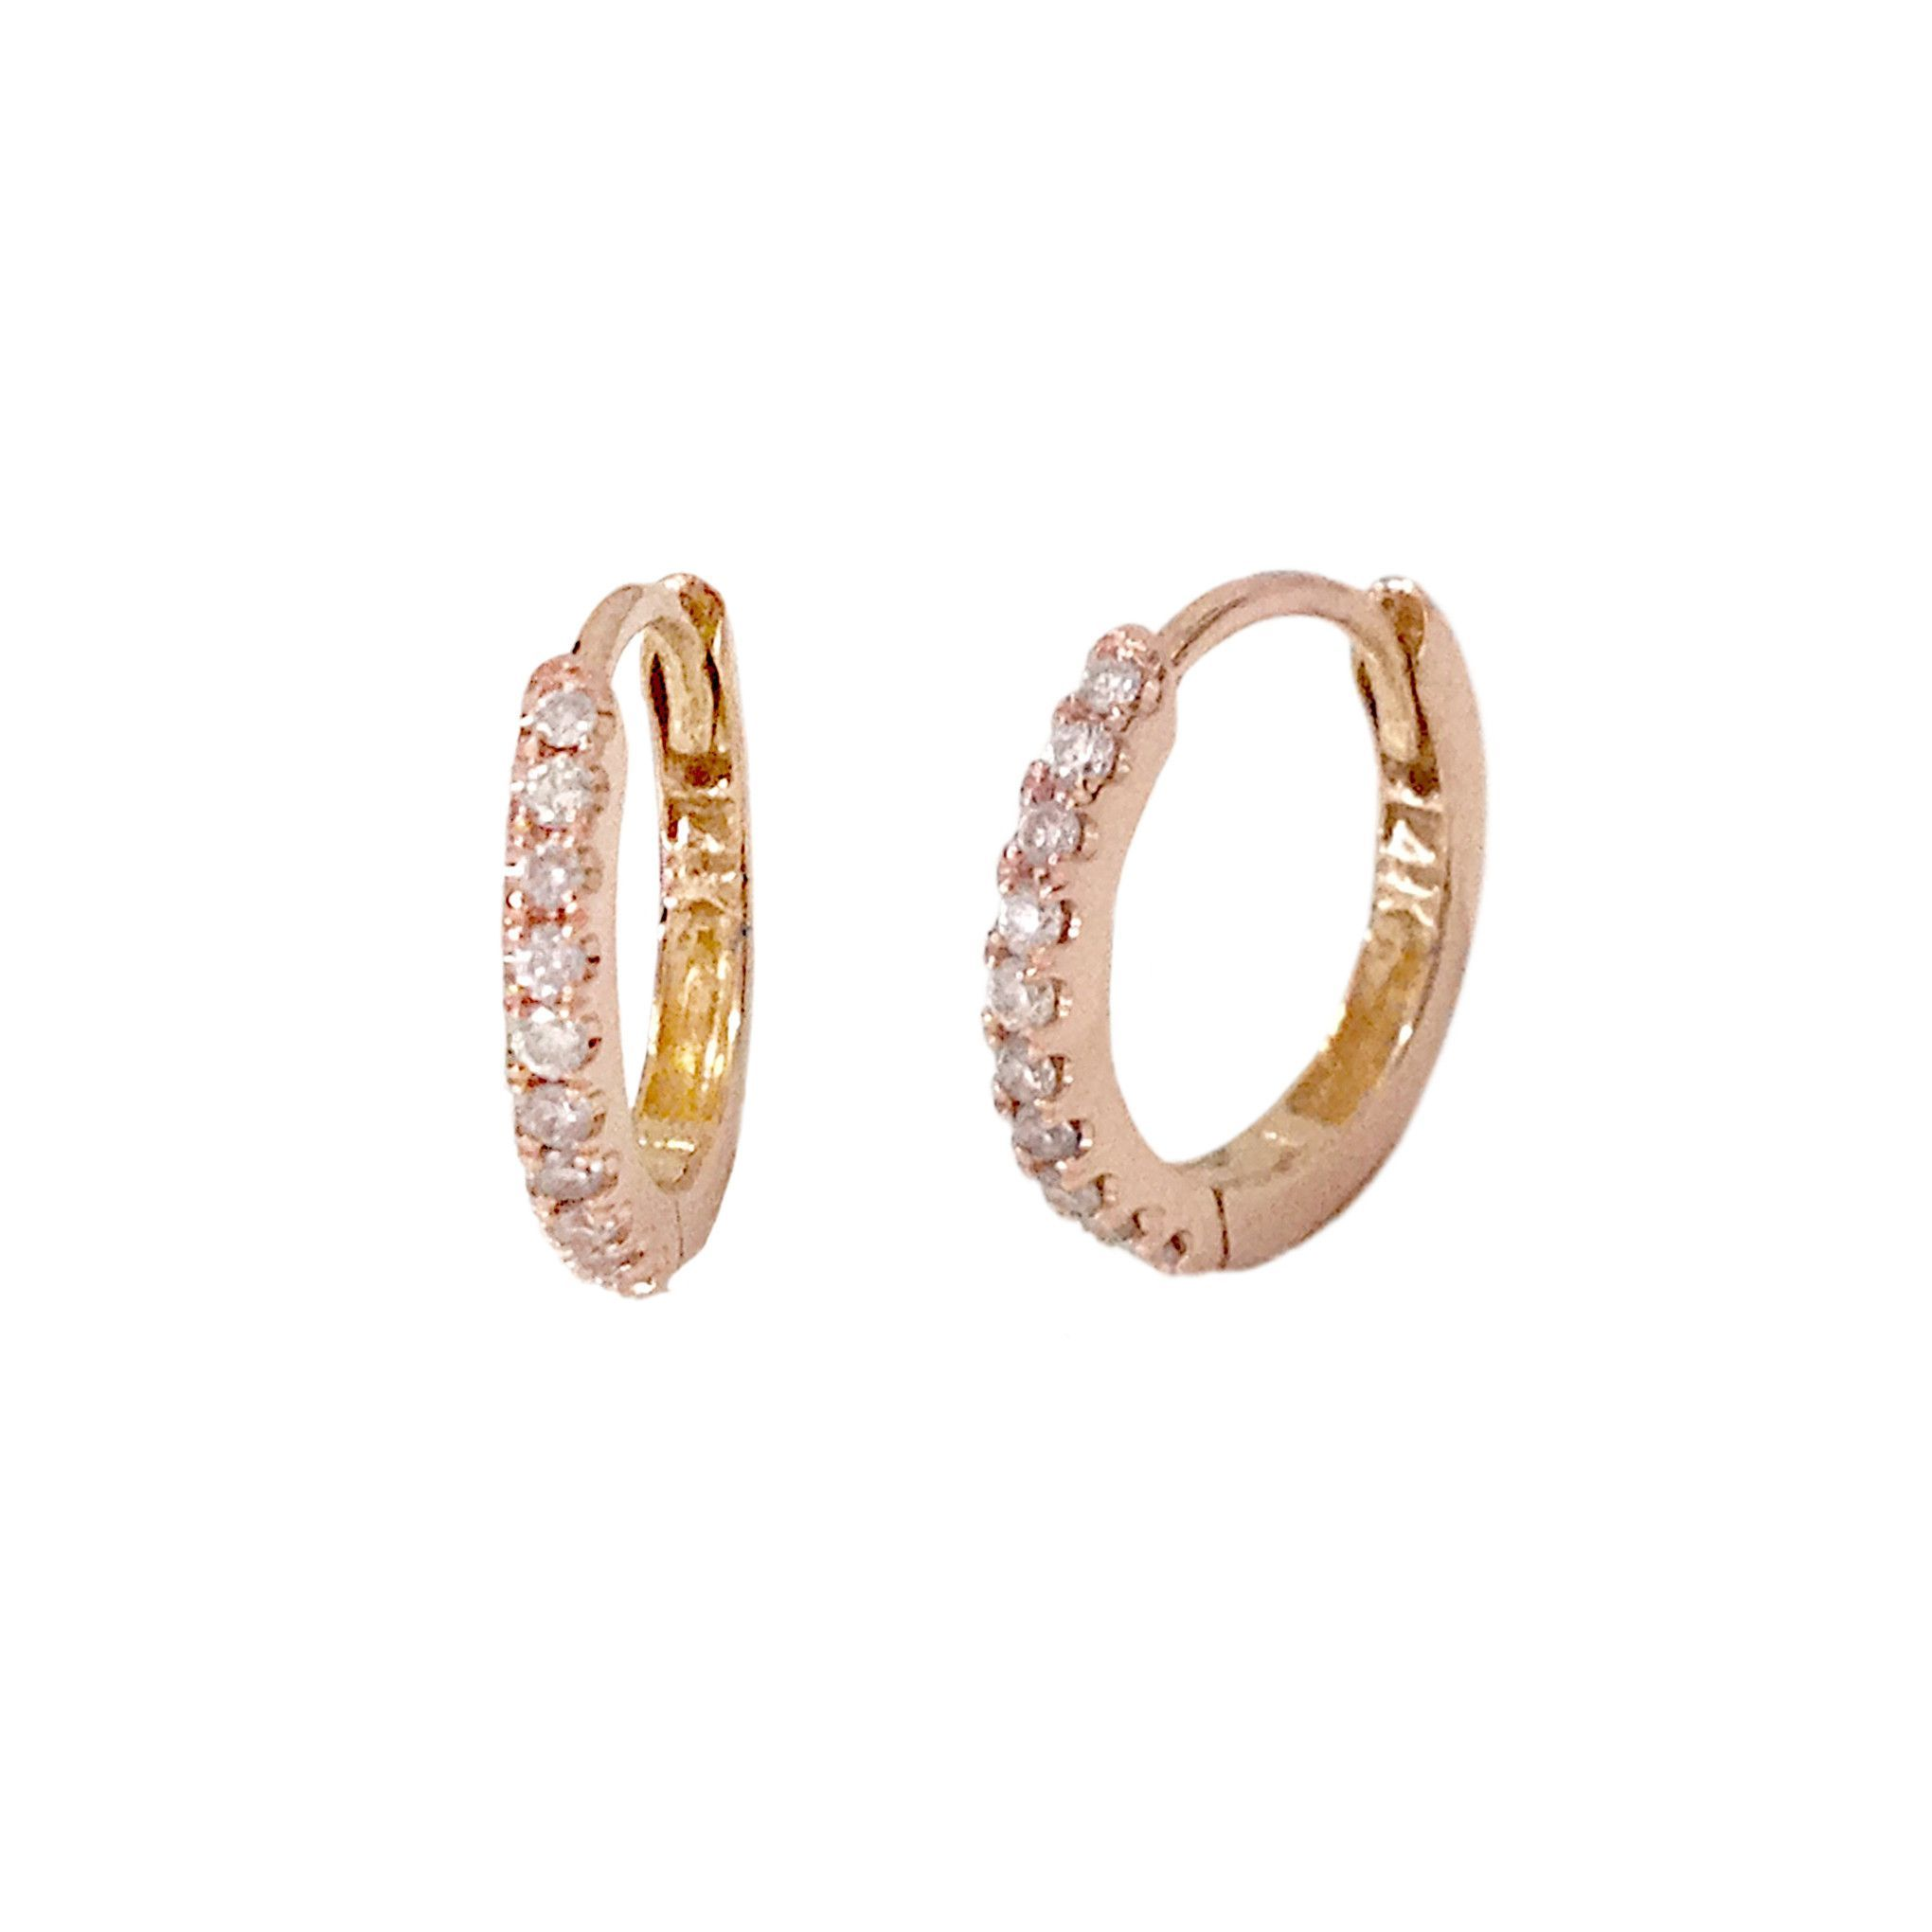 14K Gold Pavé Diamond Small Size 9mm Huggie Hoop Earrings